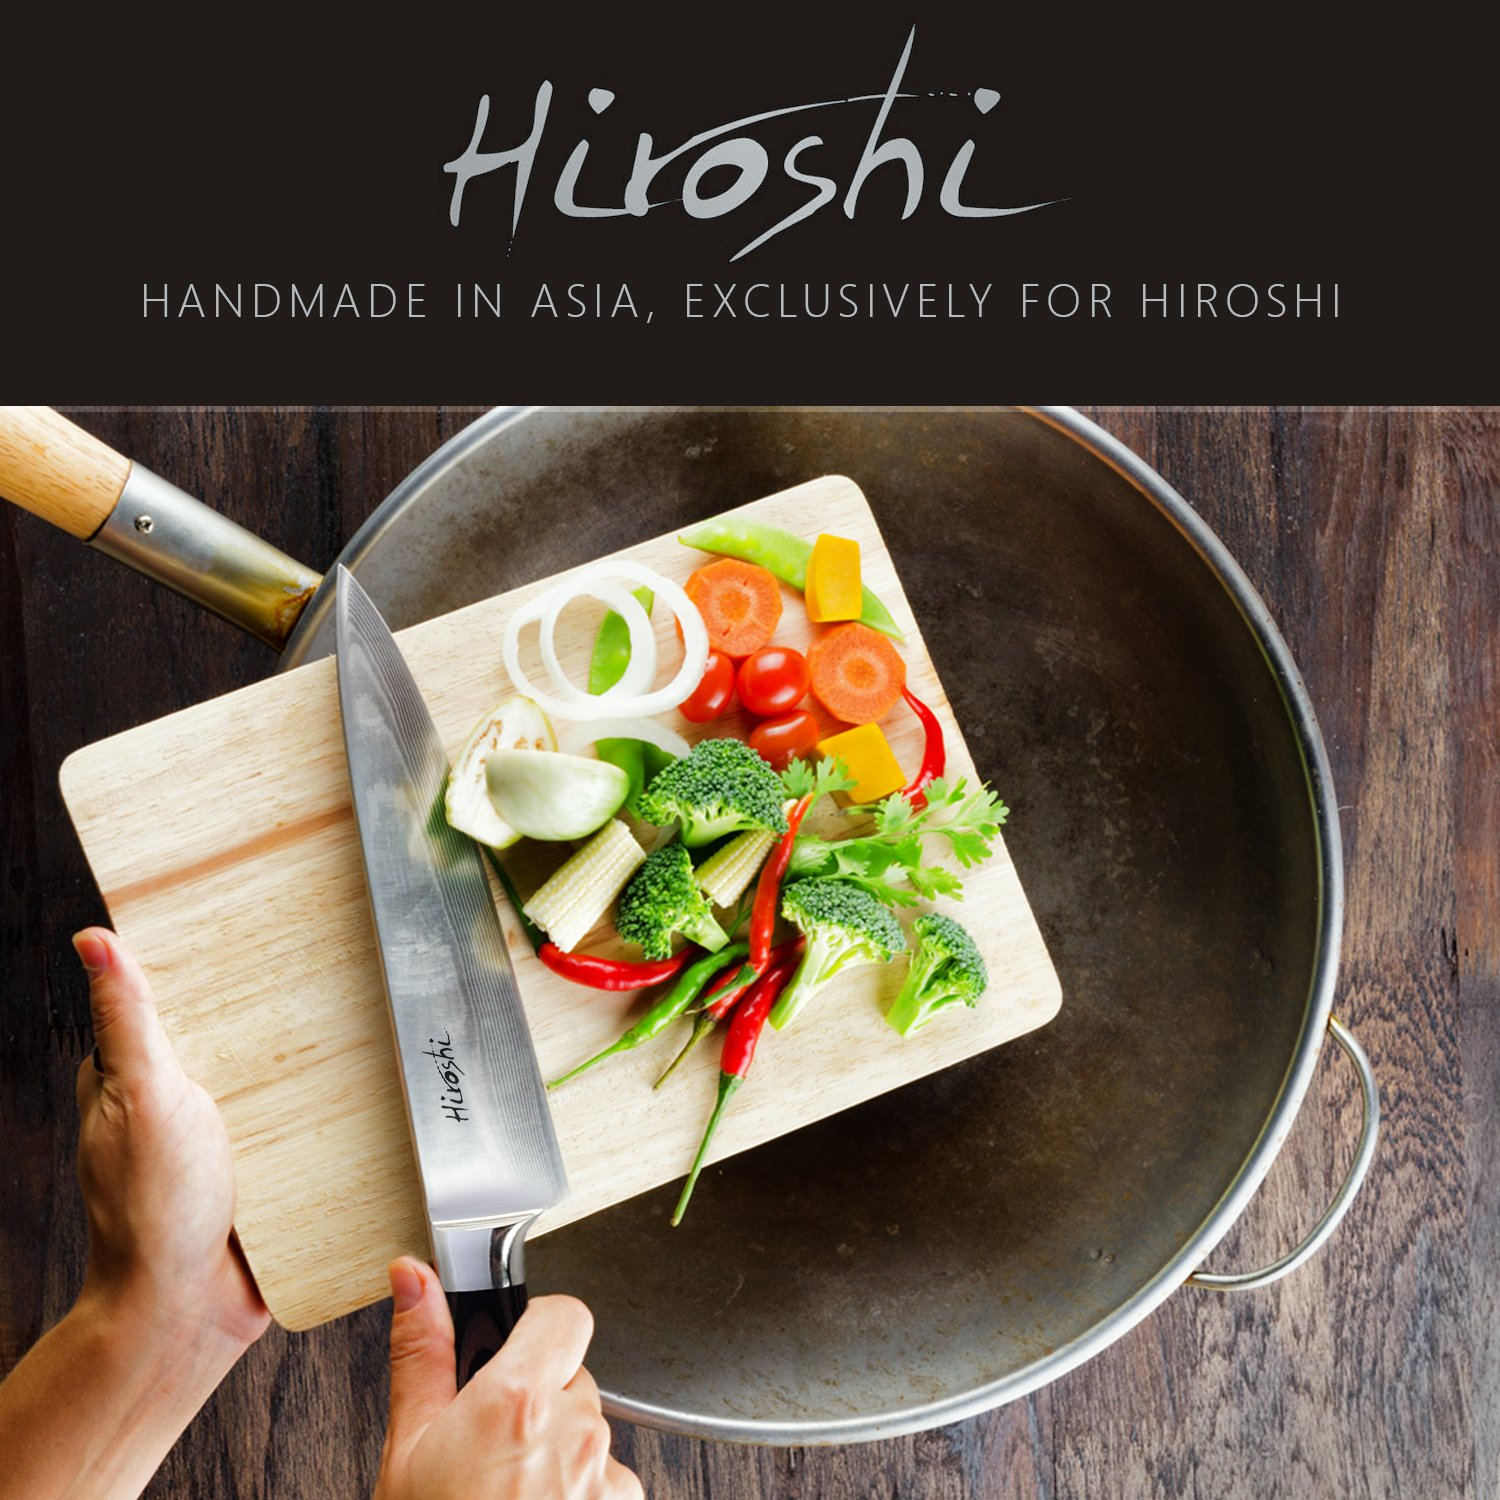 Premium Sushi & Sashimi Chef's Knife – 8'' Ultra High Carbon Damascus Steel – Presented In A Beautiful Gift Box (Black Handle) by HIROSHI (Image #7)